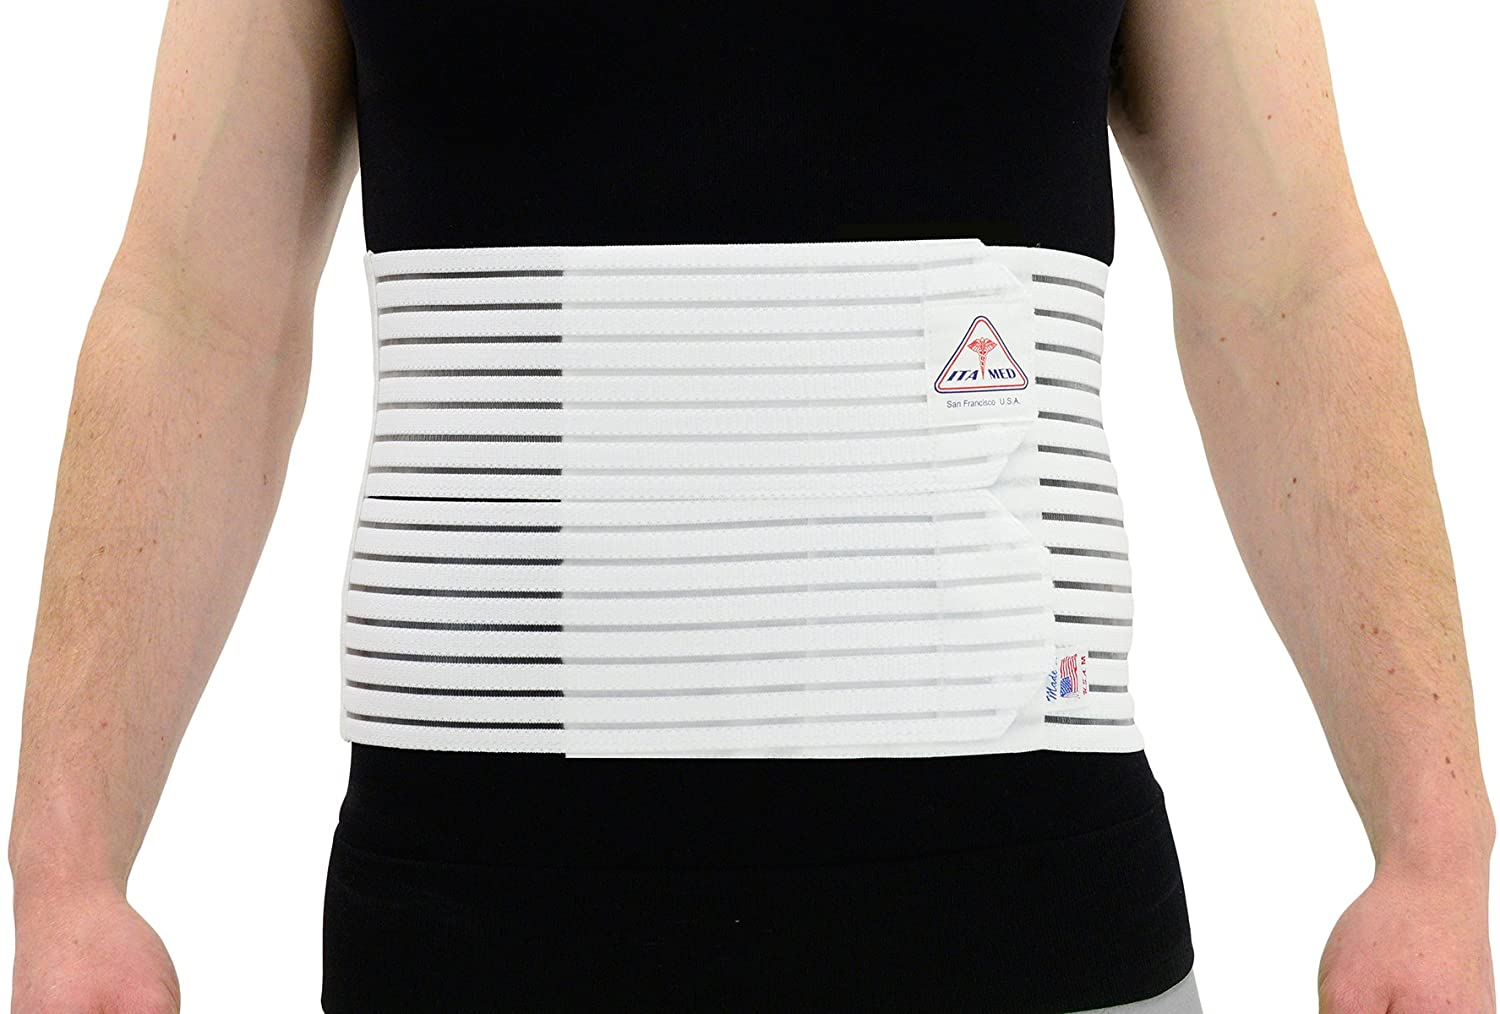 ITA-MED Men's Breathable Abdominal/Back Support Binder AB-208: White Small